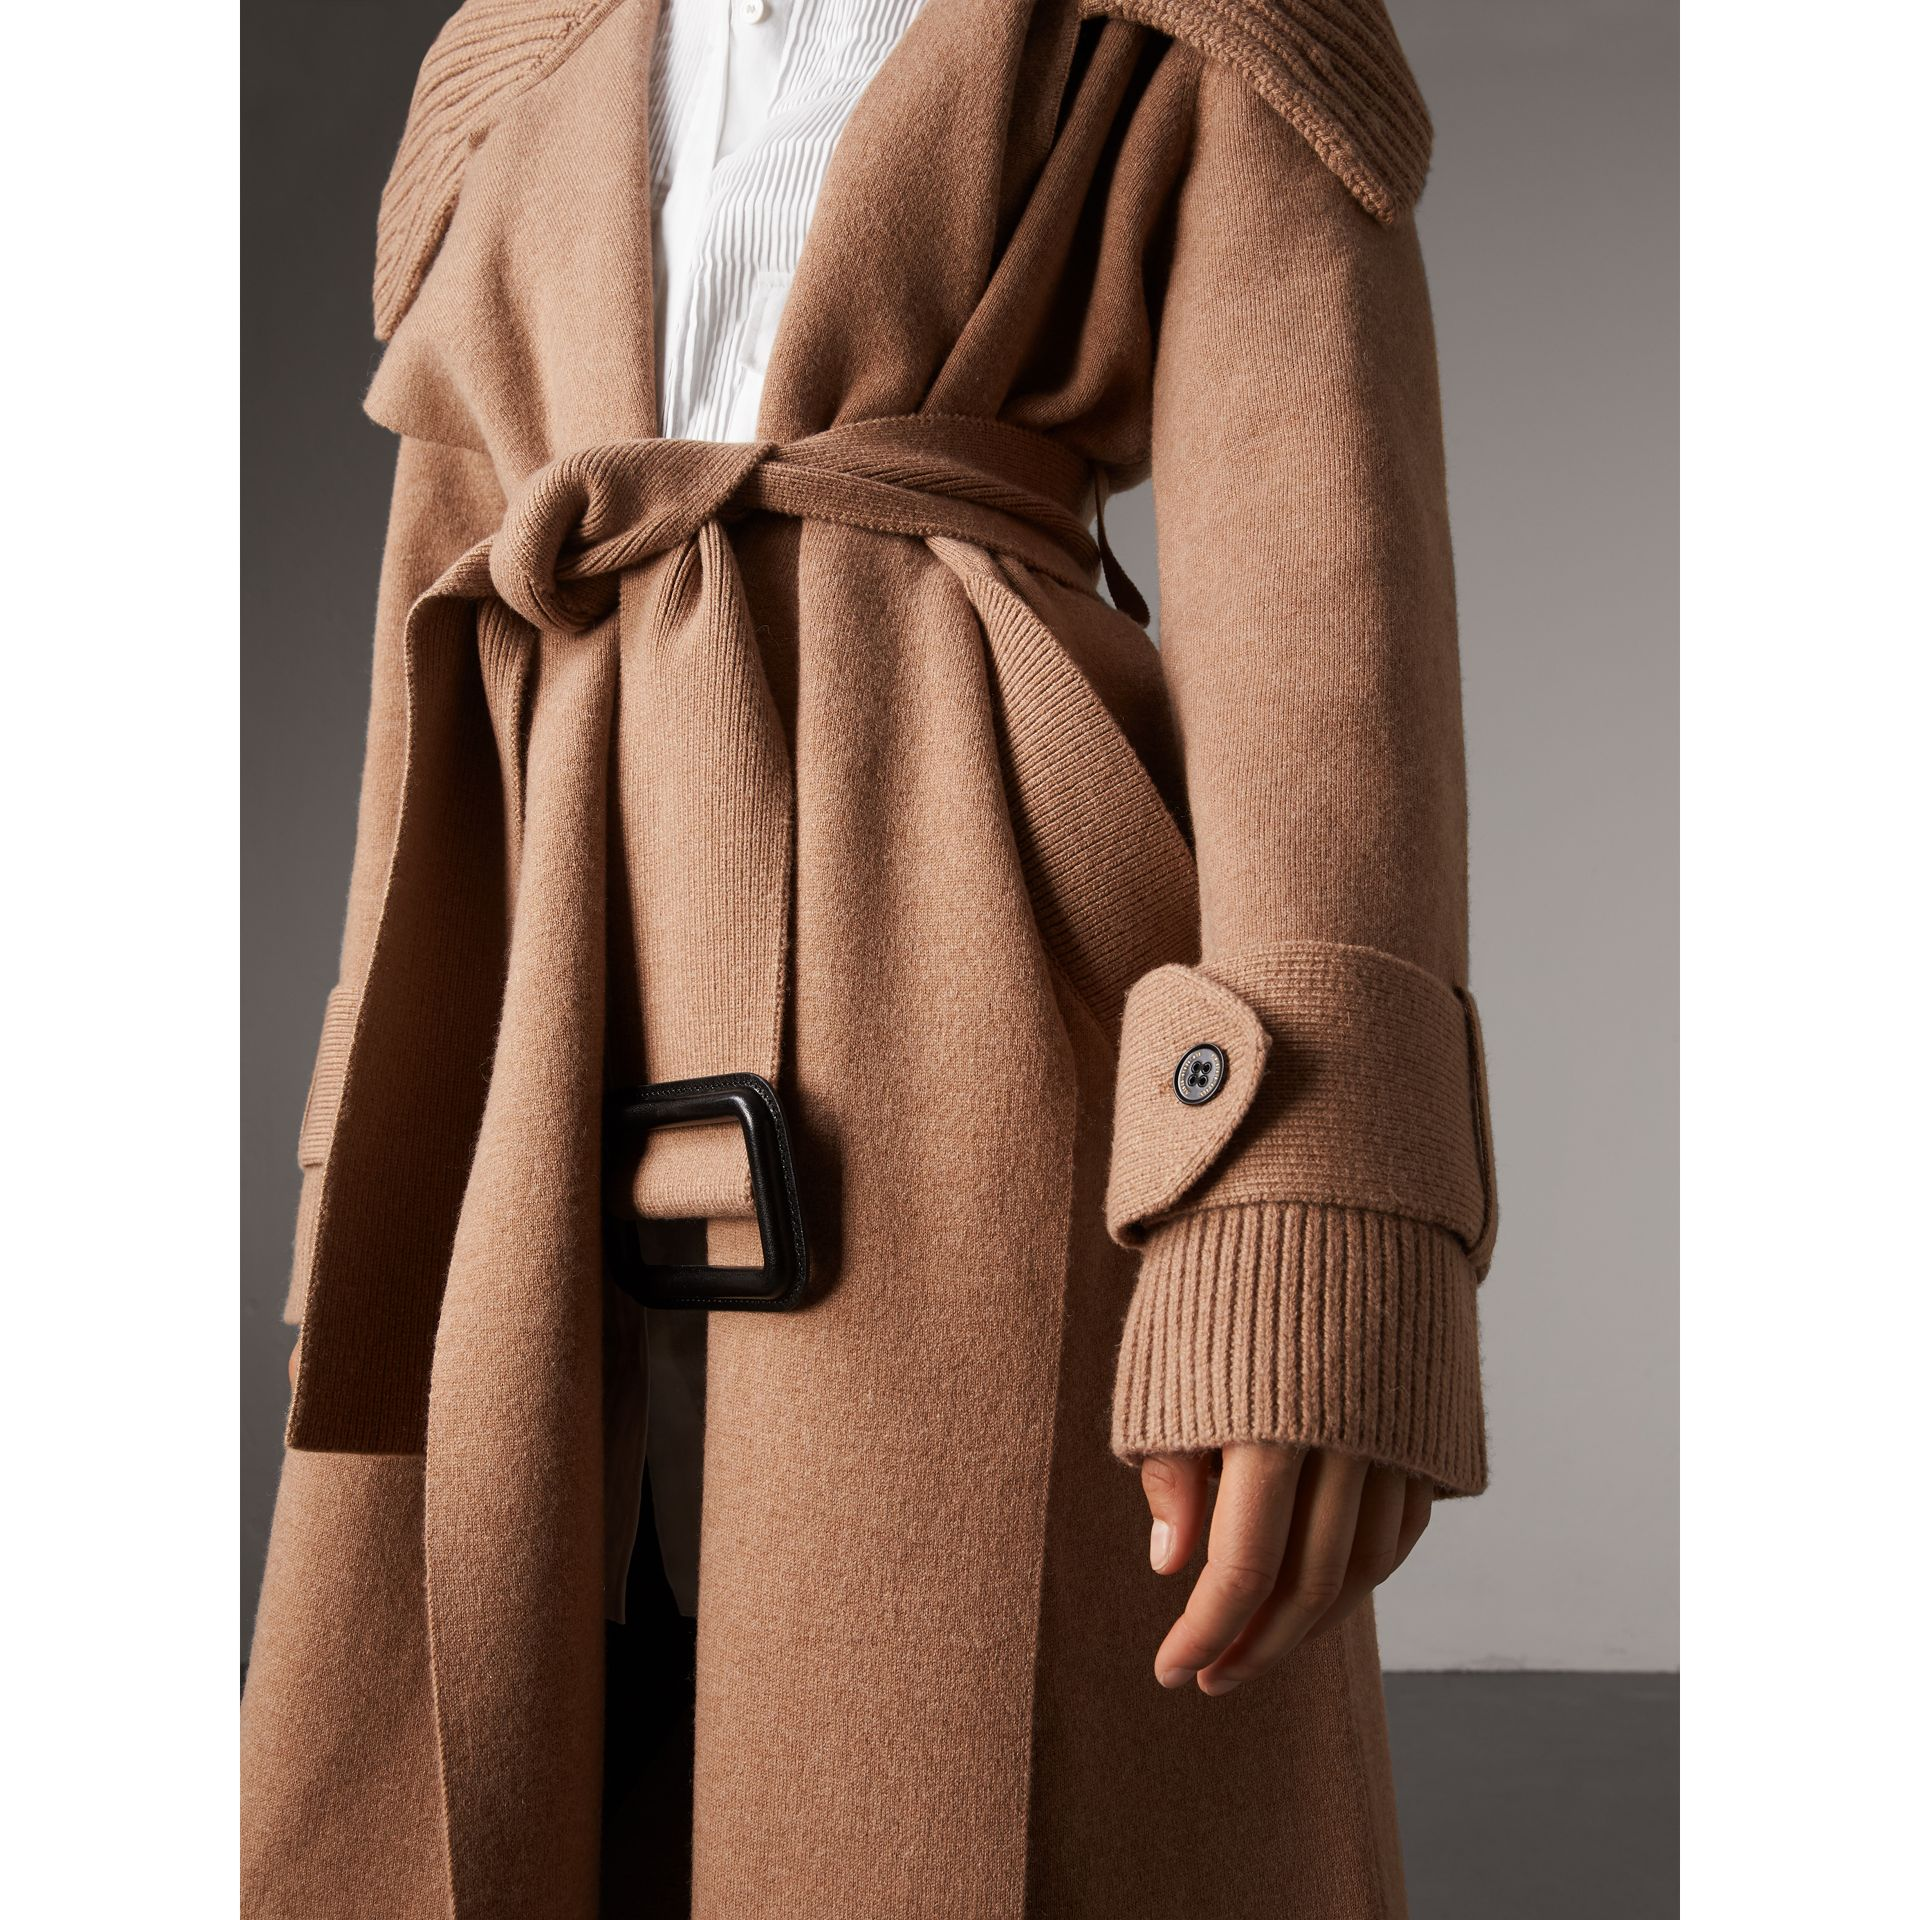 Knitted Wool Cashmere Wrap Coat in Camel - Women | Burberry Singapore - gallery image 1